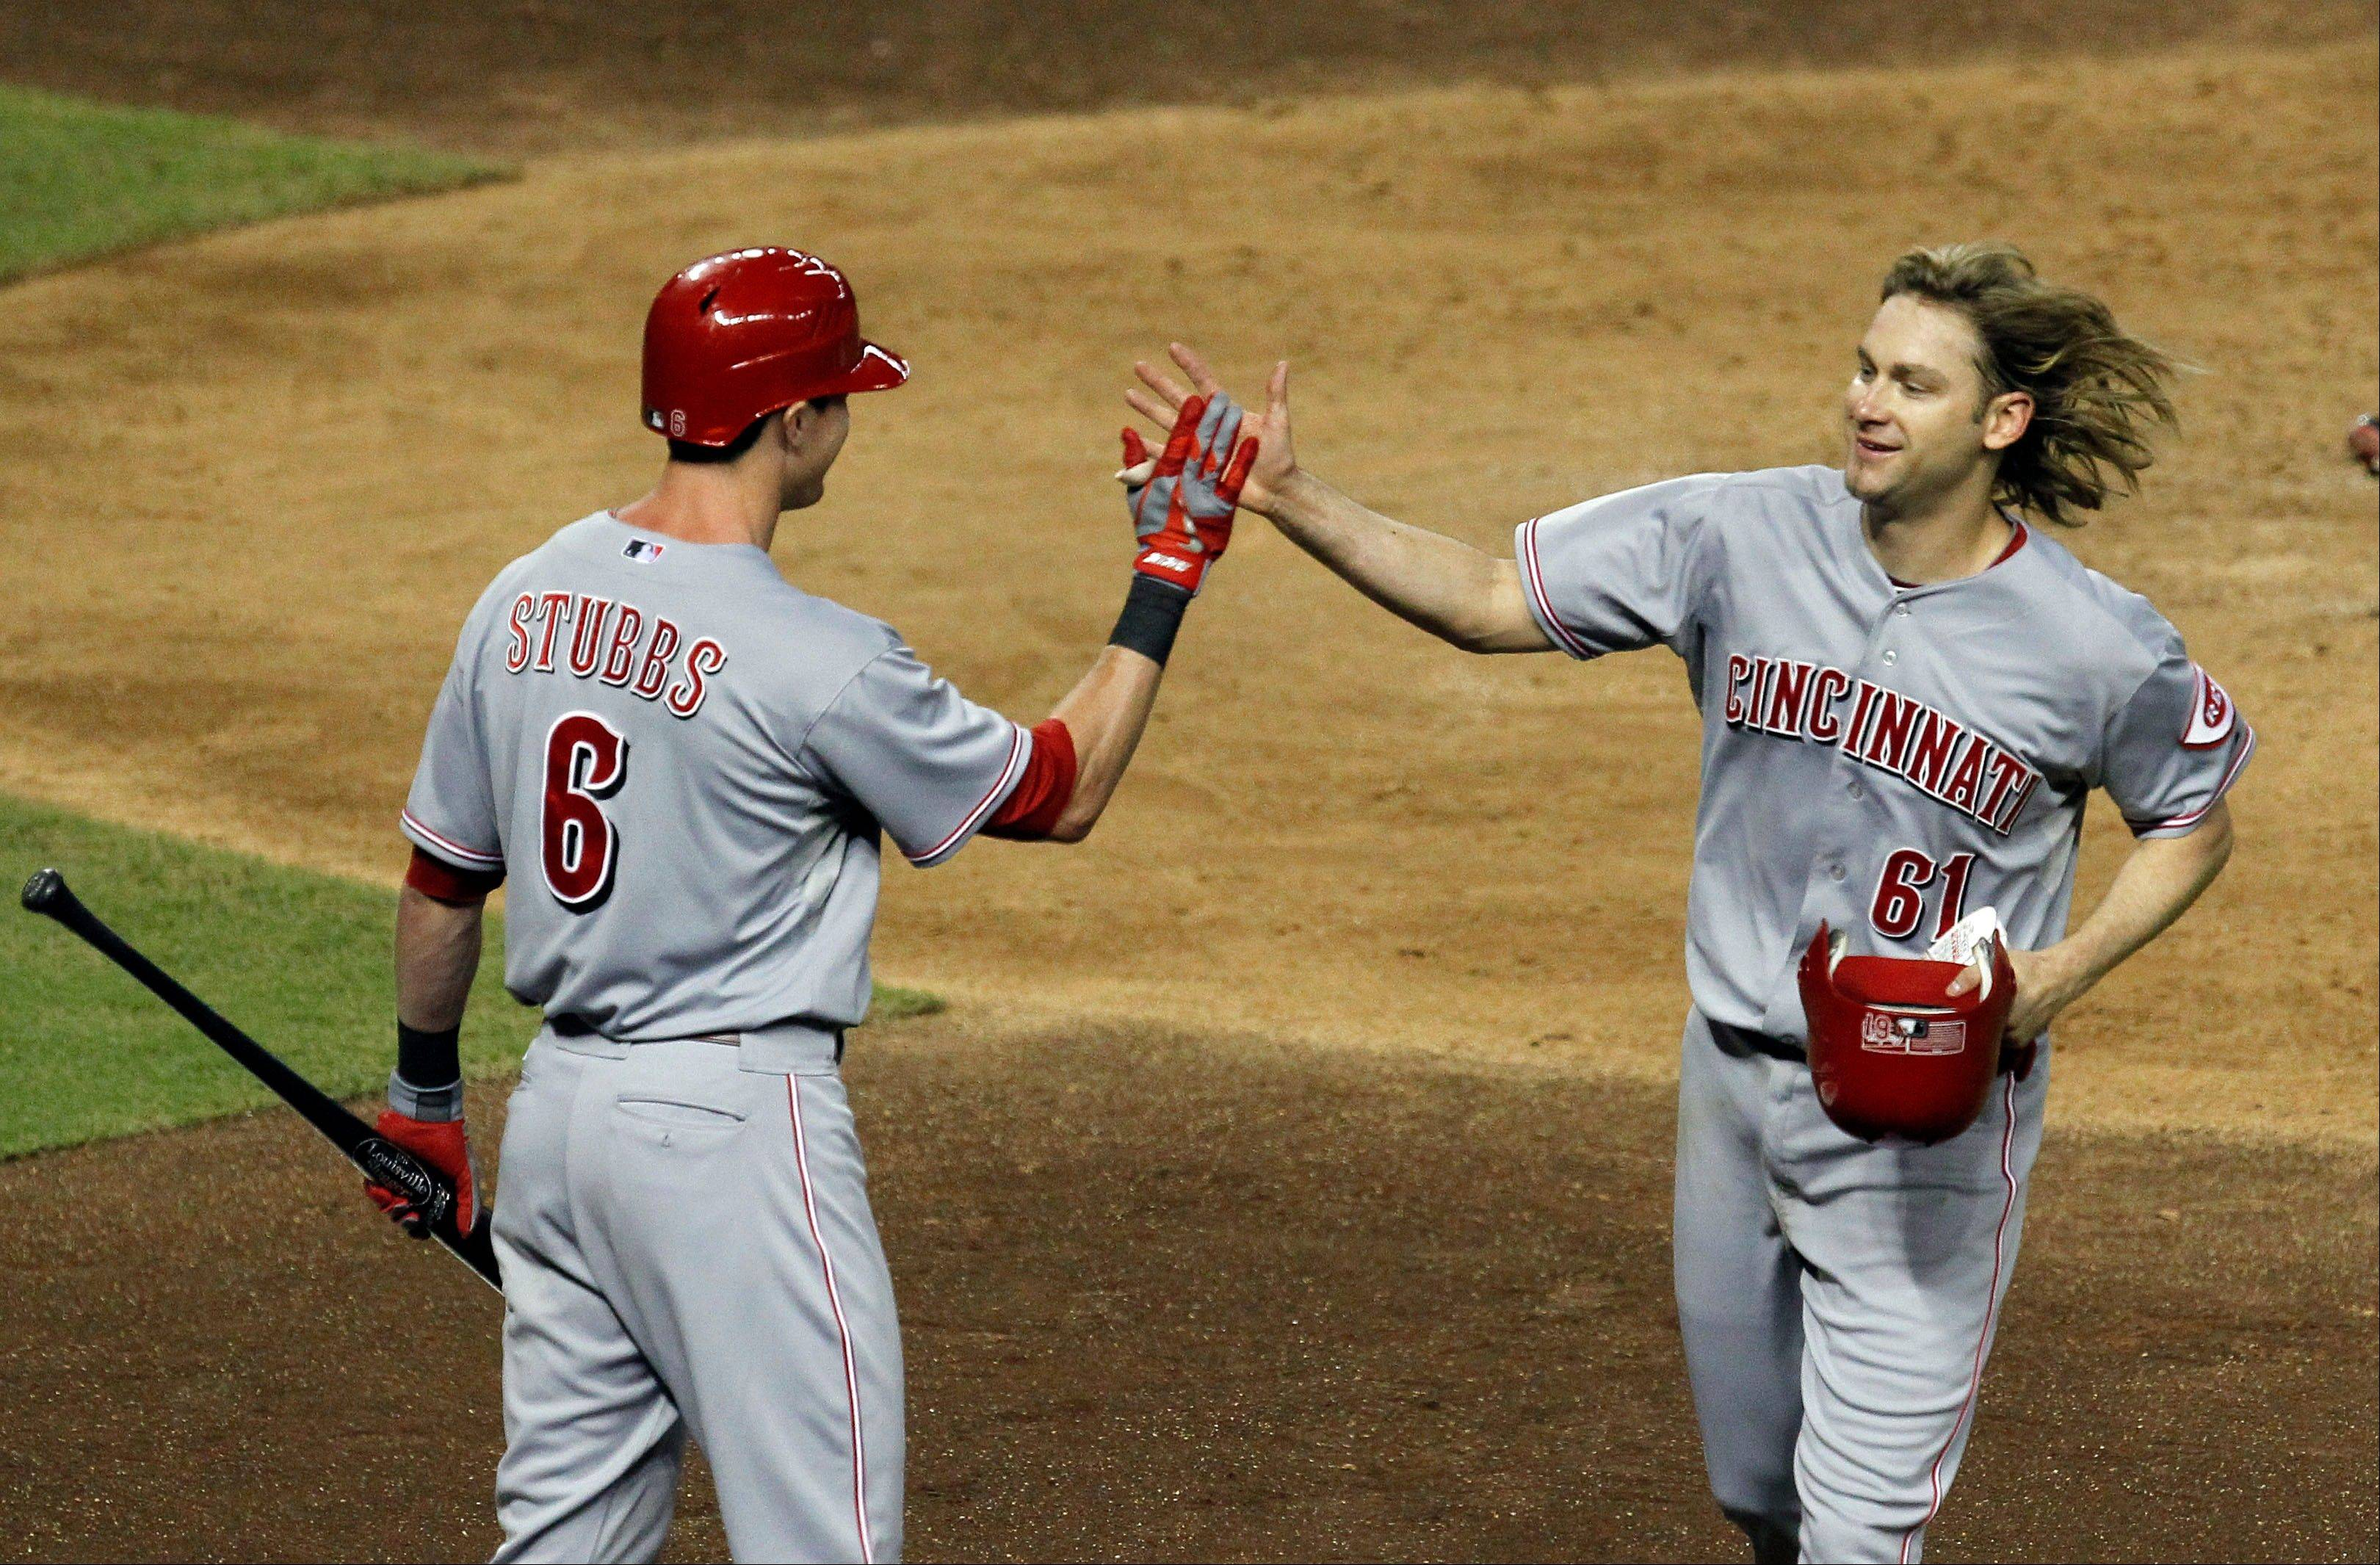 The Reds� Bronson Arroyo gets a high-five from teammate Drew Stubbs after hitting a home run against the Arizona Diamondbacks in the sixth inning Monday in Phoenix.